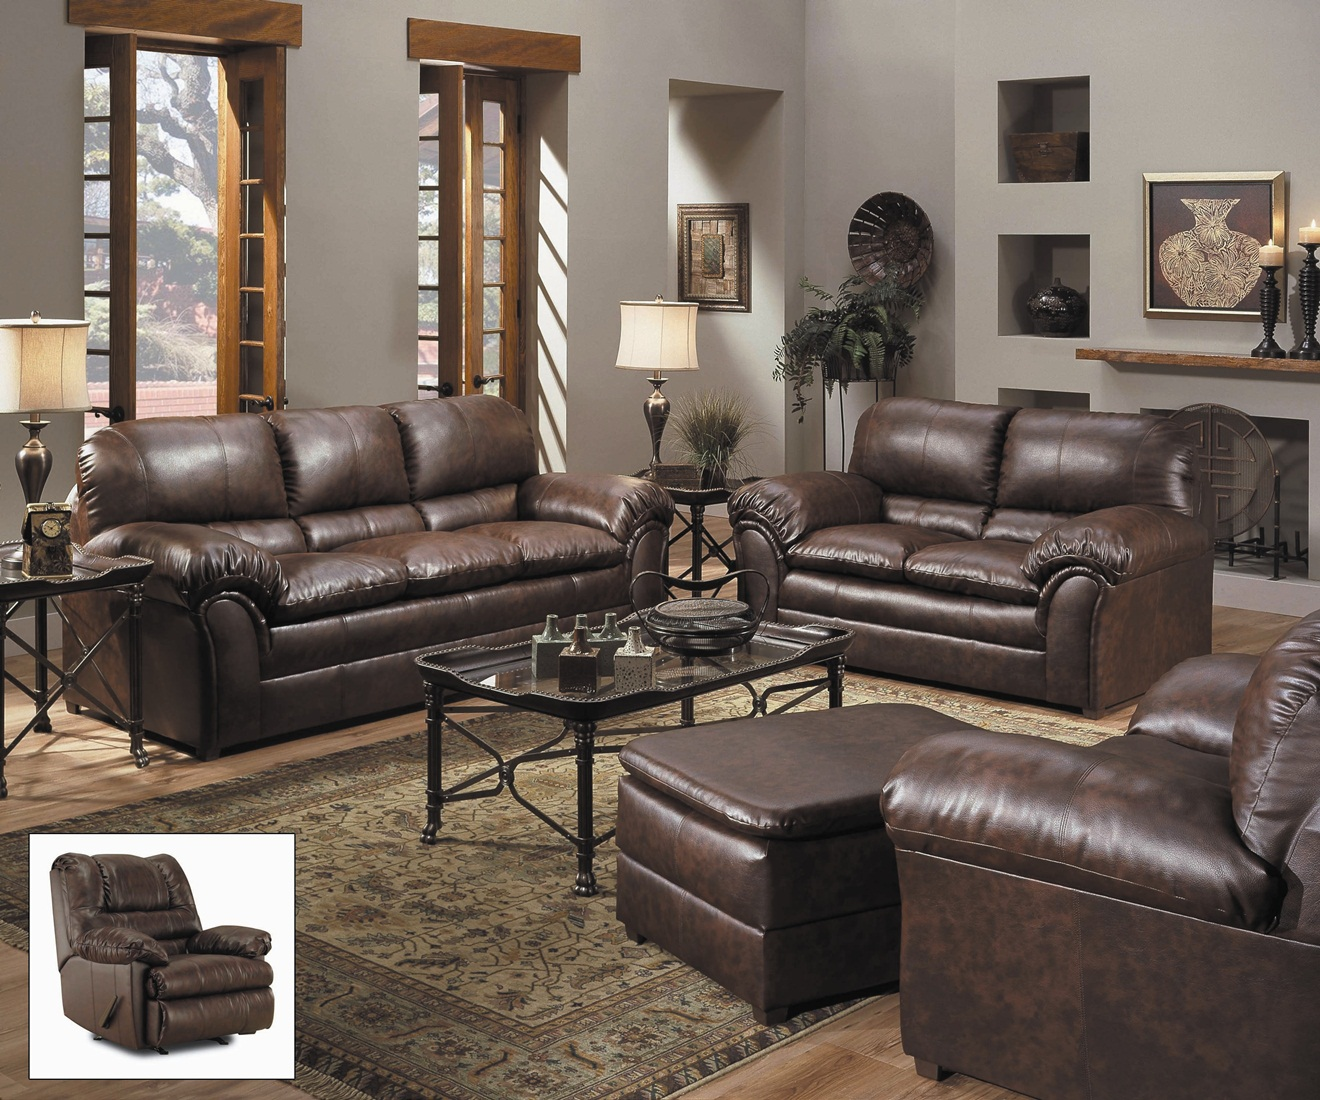 Geneva Classic Brown Bonded Leather Living Room Furniture. Mom Sex Kitchen. Galley Kitchen Dimensions. Clean Kitchen Drain. Kitchen Collection Chillicothe Ohio. Used Kitchen Appliances Sale. Virtual Design A Kitchen. Tuscan Kitchen Decor Ideas. Touch Free Kitchen Faucets